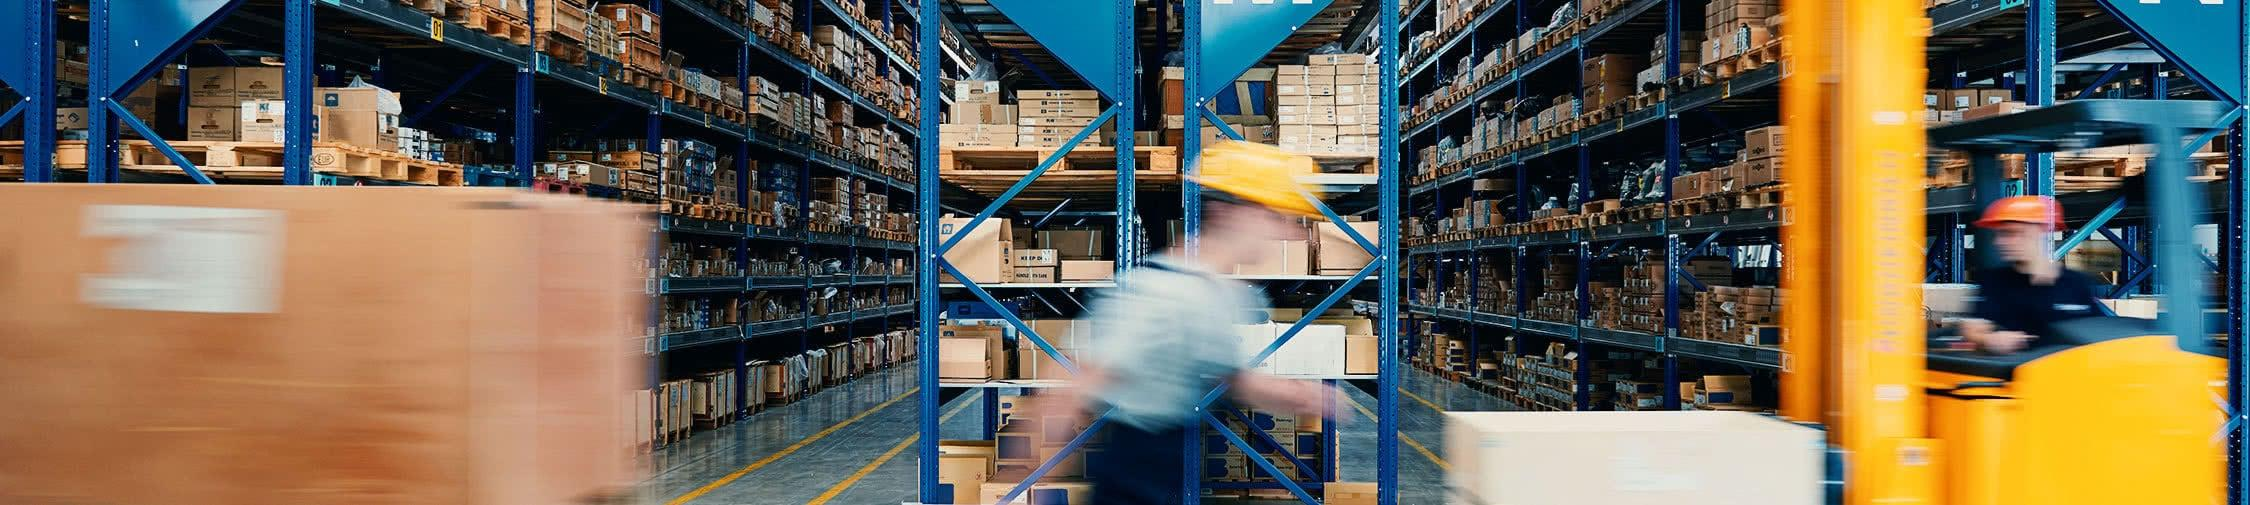 warehouse-safety-compliance